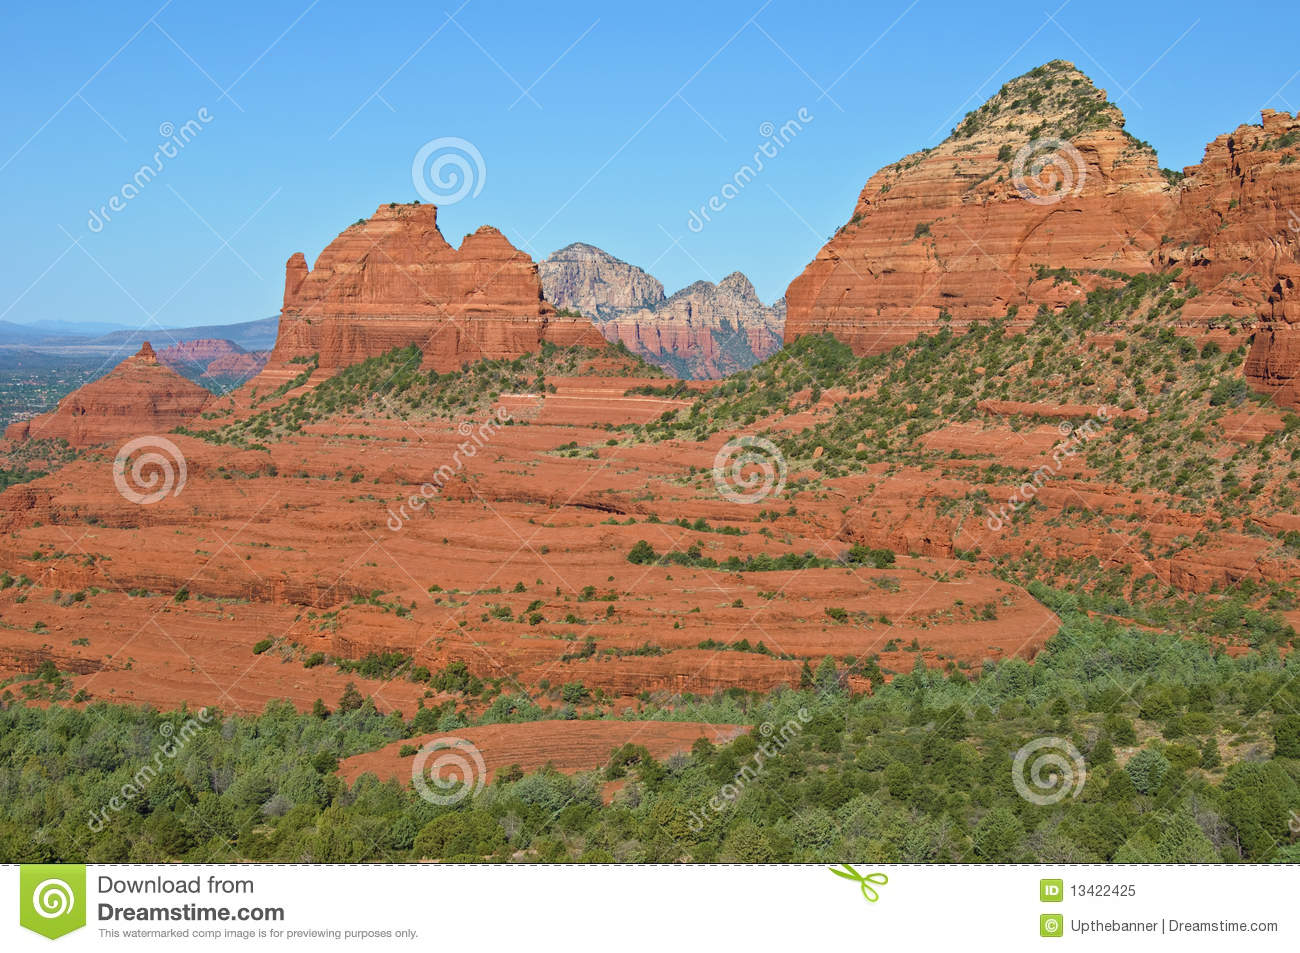 Scenic Sandstone Mountain Range Landscape Royalty Free Stock Photo.